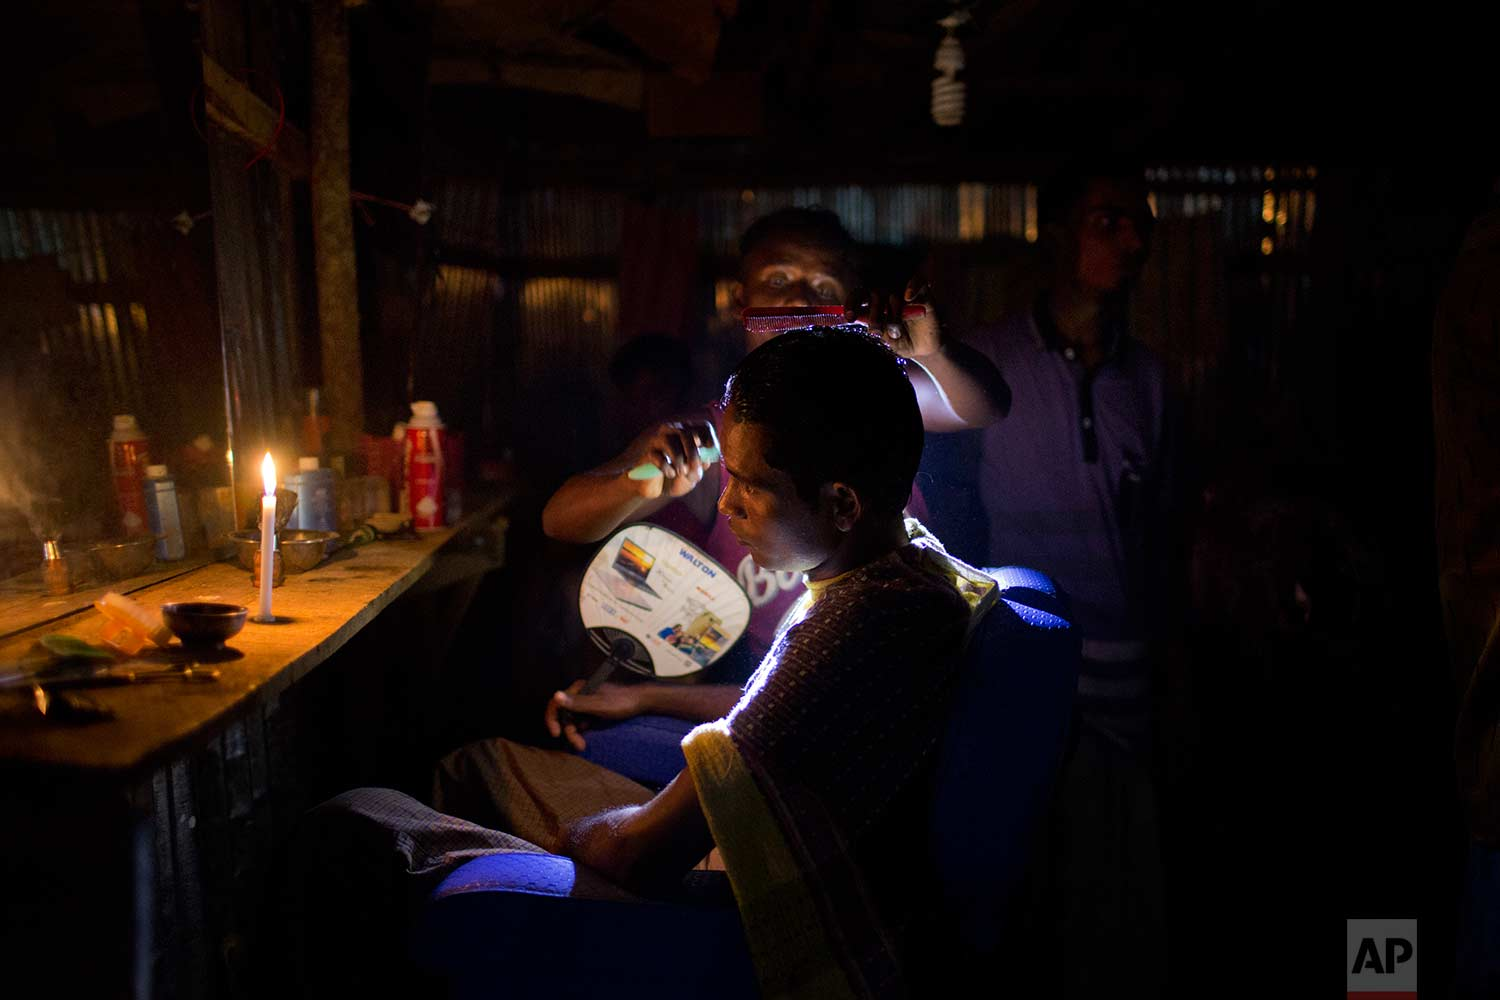 A Rohingya Muslim gets his hair cut in a makeshift barber shop that is lit with a candle and a torch light at Jamtoli refugee camp, Friday, Nov. 24, 2017, in Bangladesh. (AP Photo/Wong Maye-E)